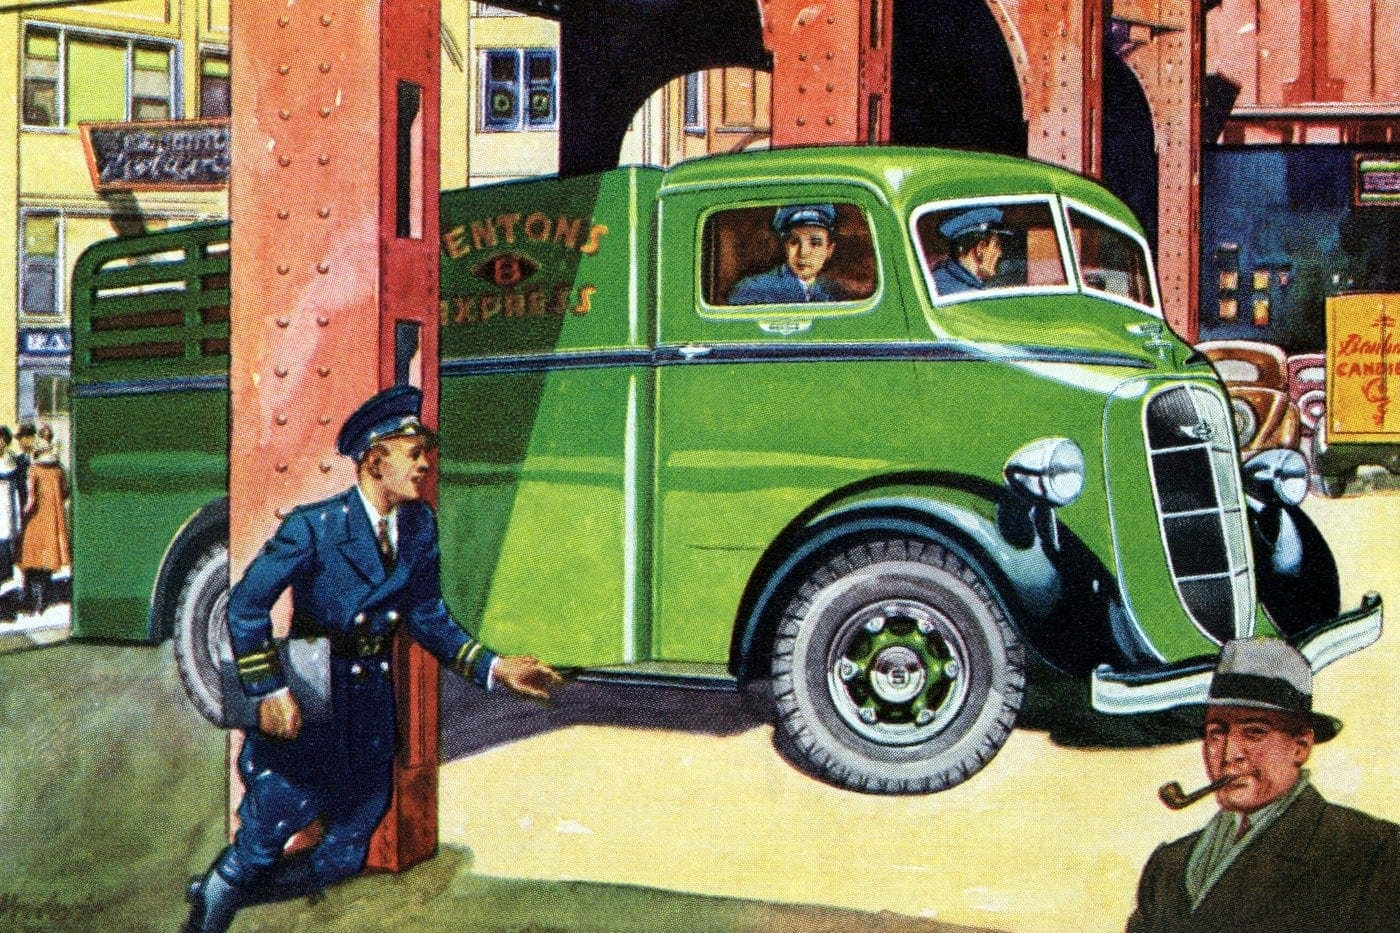 These classic Studebaker delivery trucks from the 30s got around